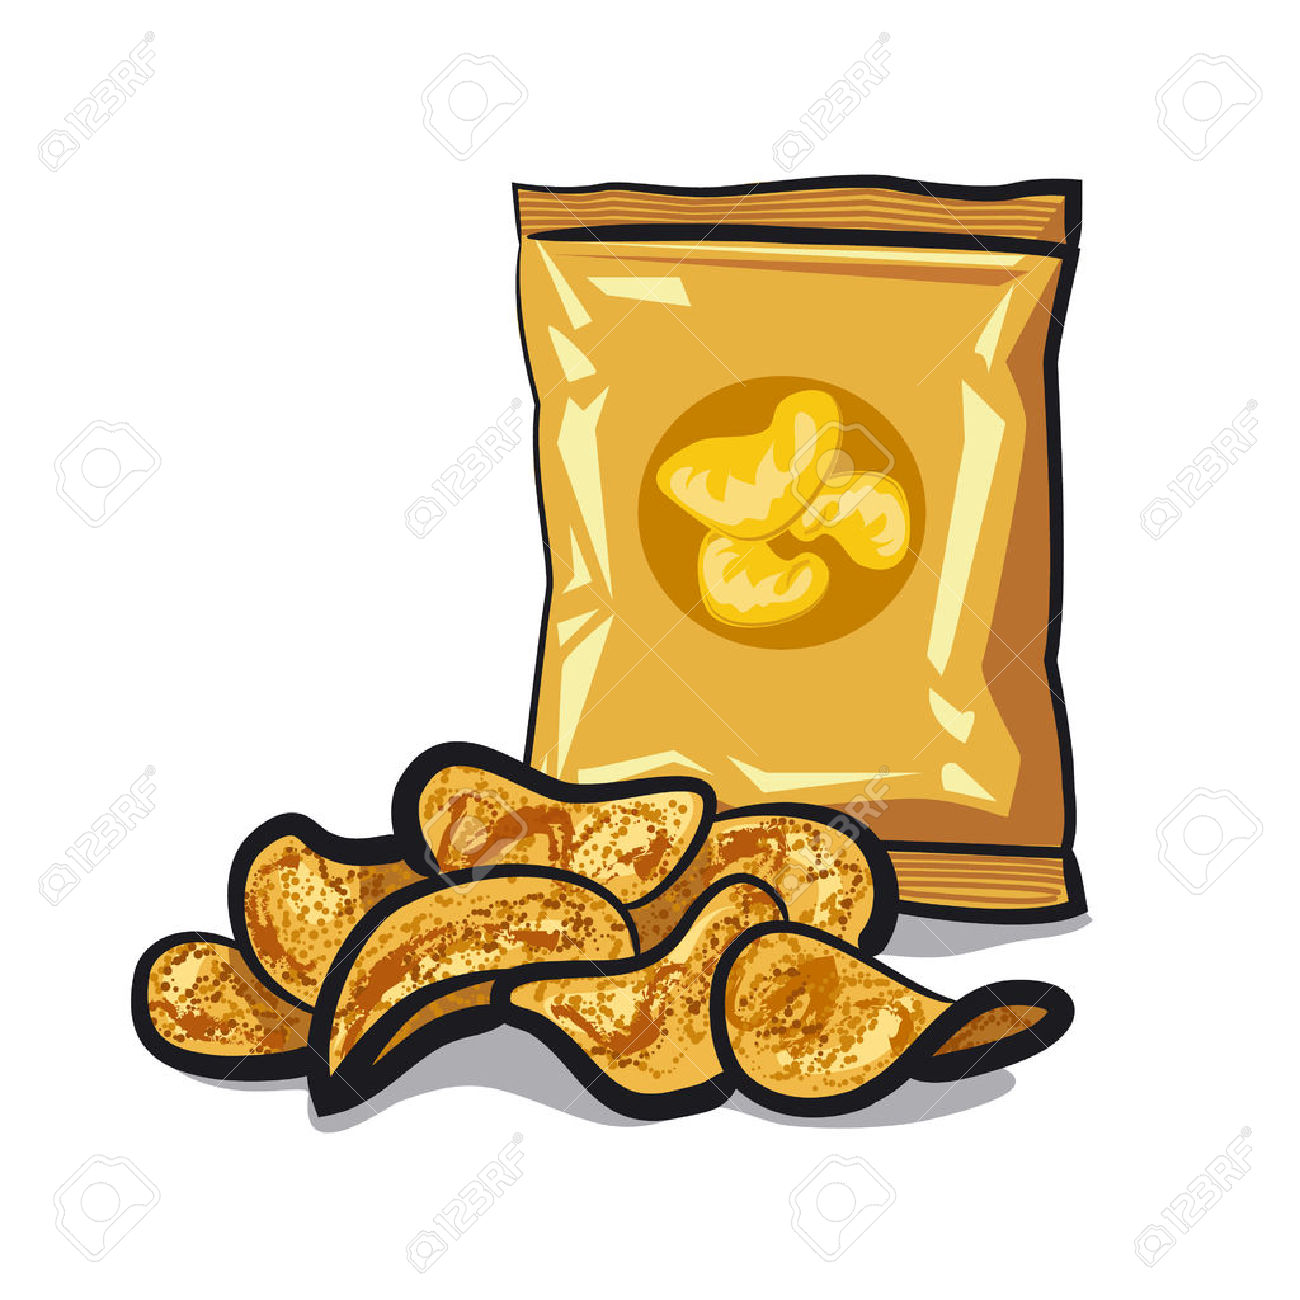 Chips clipart potato chip. Free download best